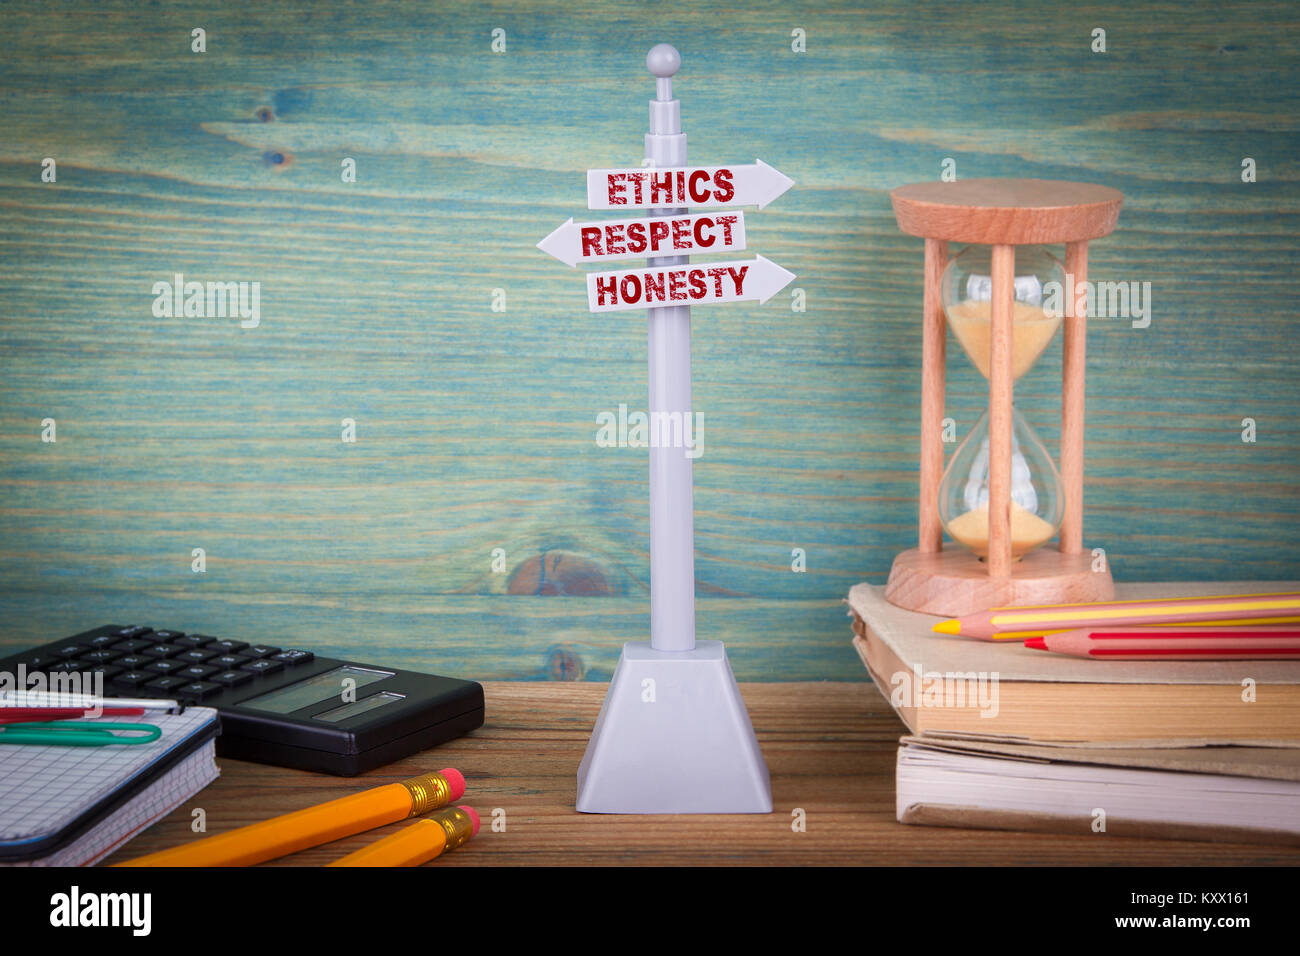 ethics respect honesty, code of conduct. Signpost on wooden table - Stock Image